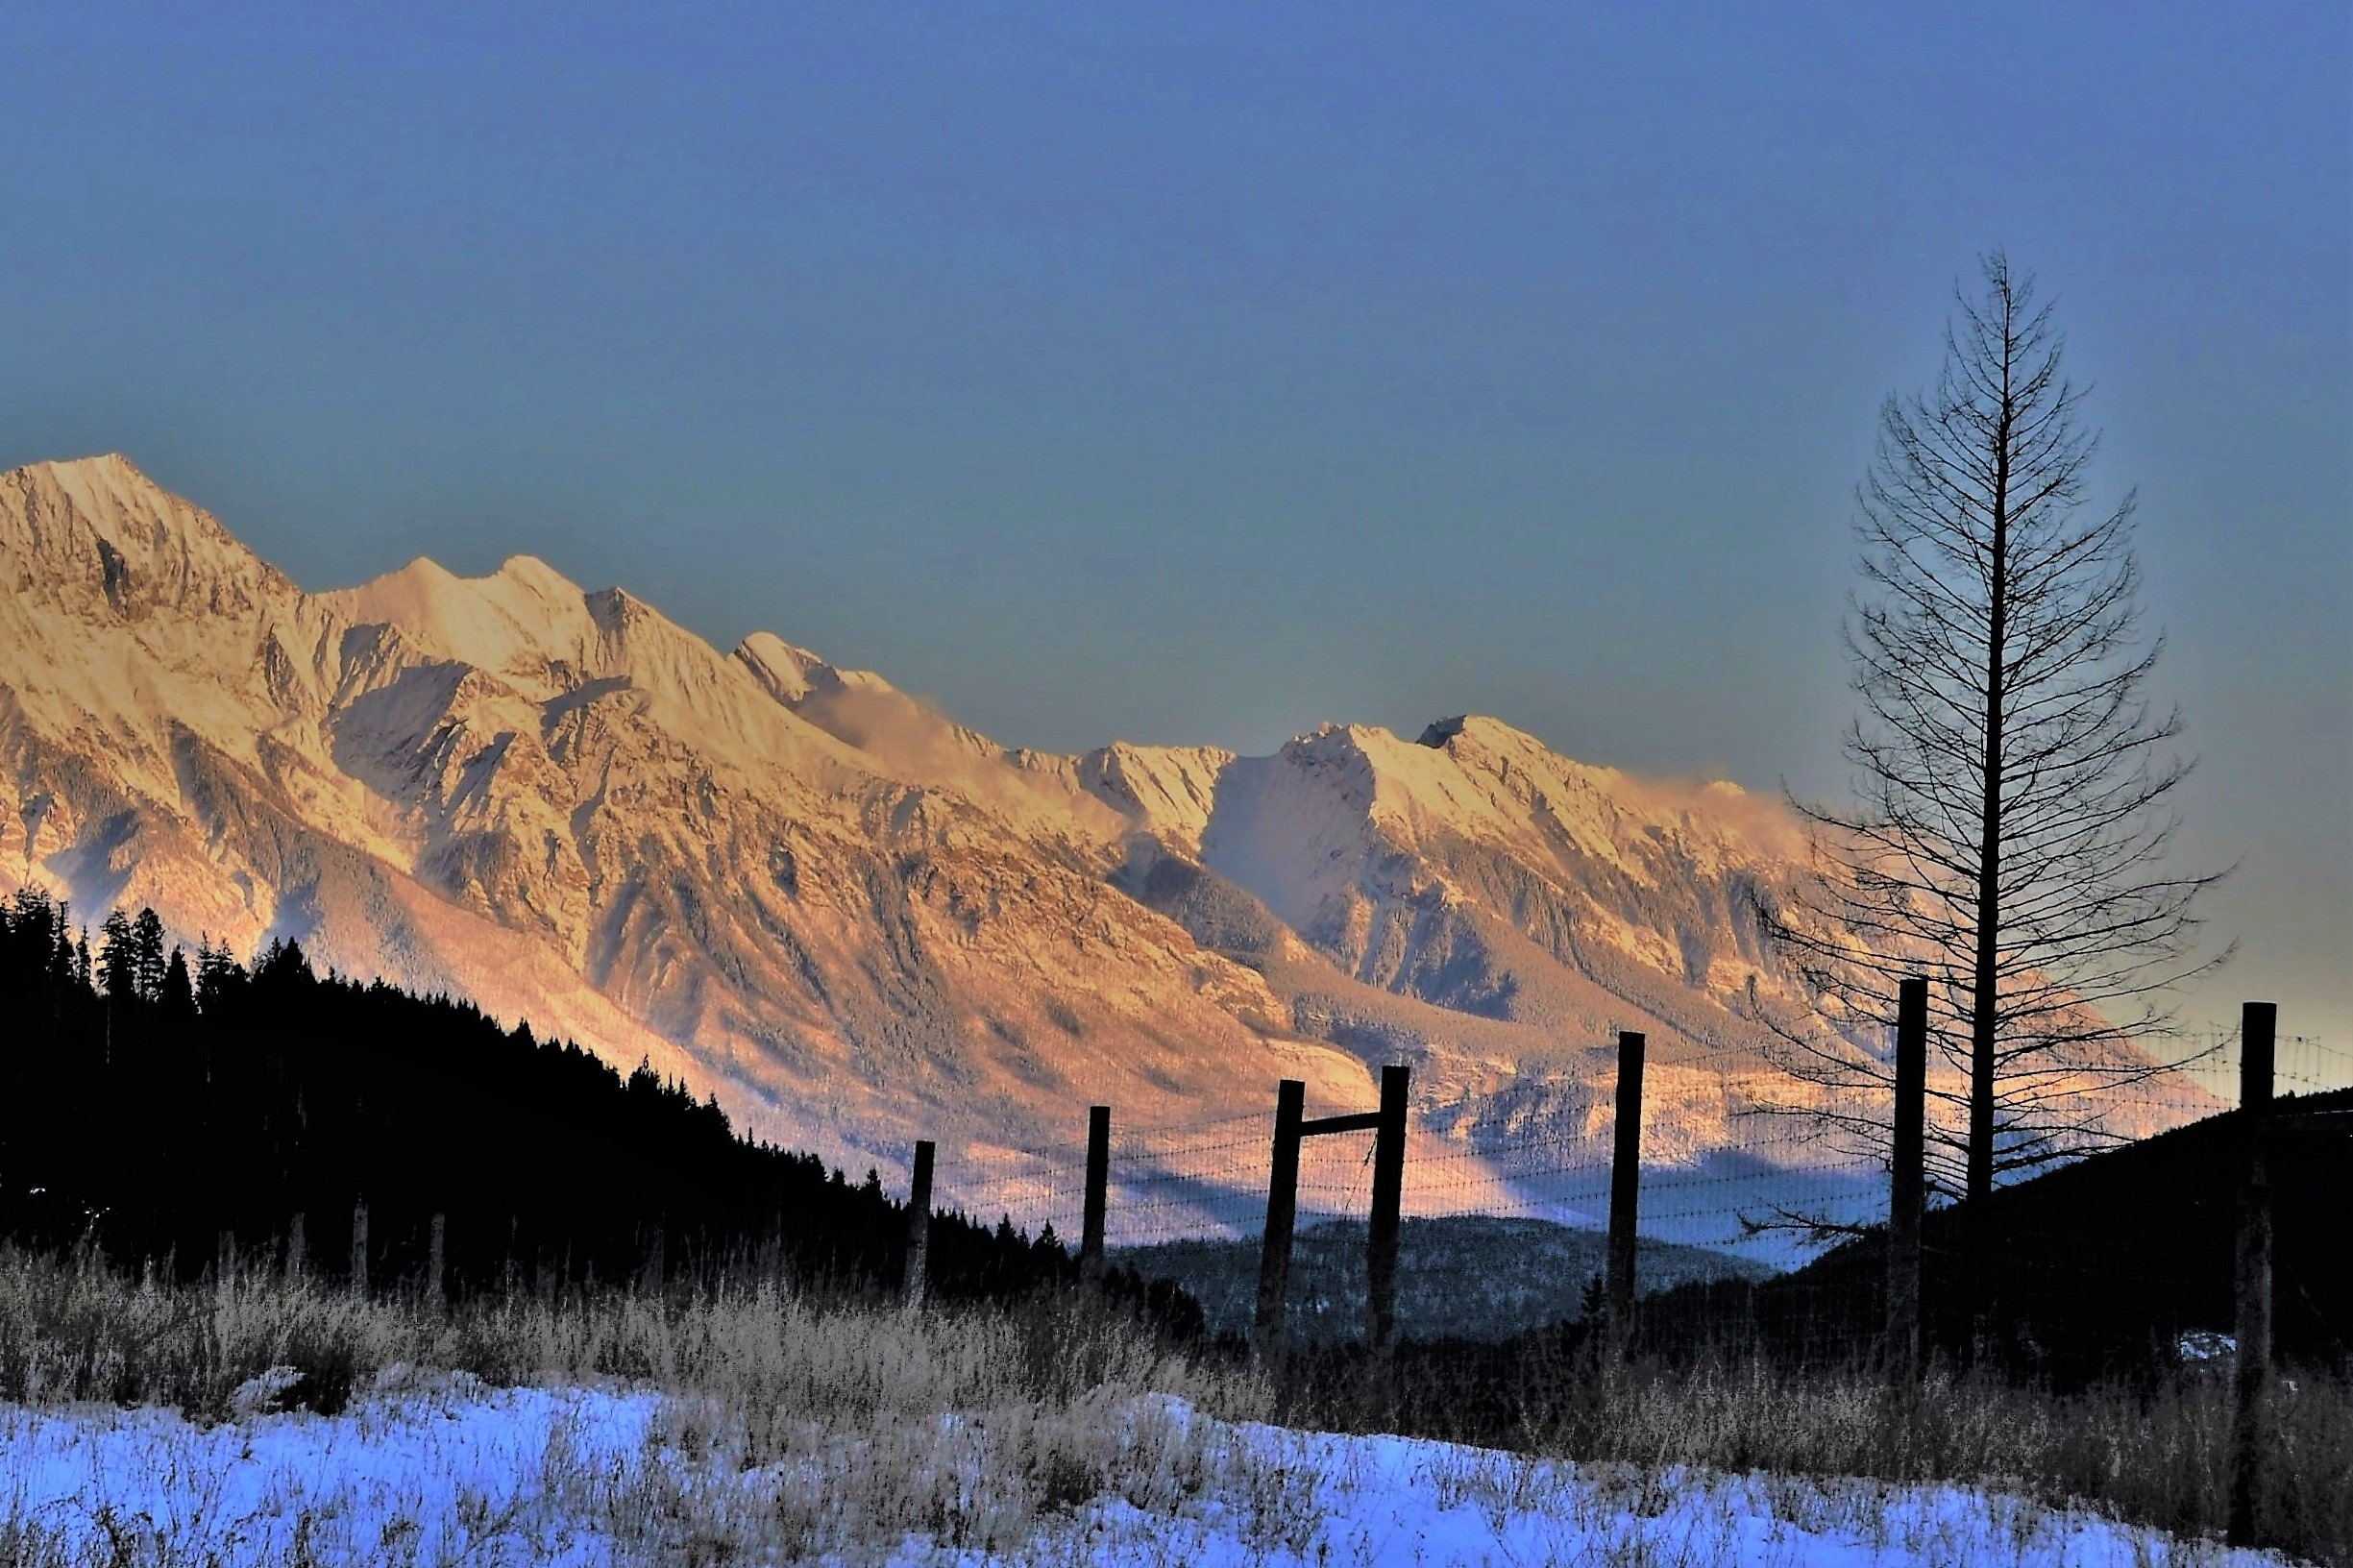 Fence and Rocky Mntns. near Trans-Canada Highway (2), Banff Alberta Nov. 6-2017  - bruce witzel photo